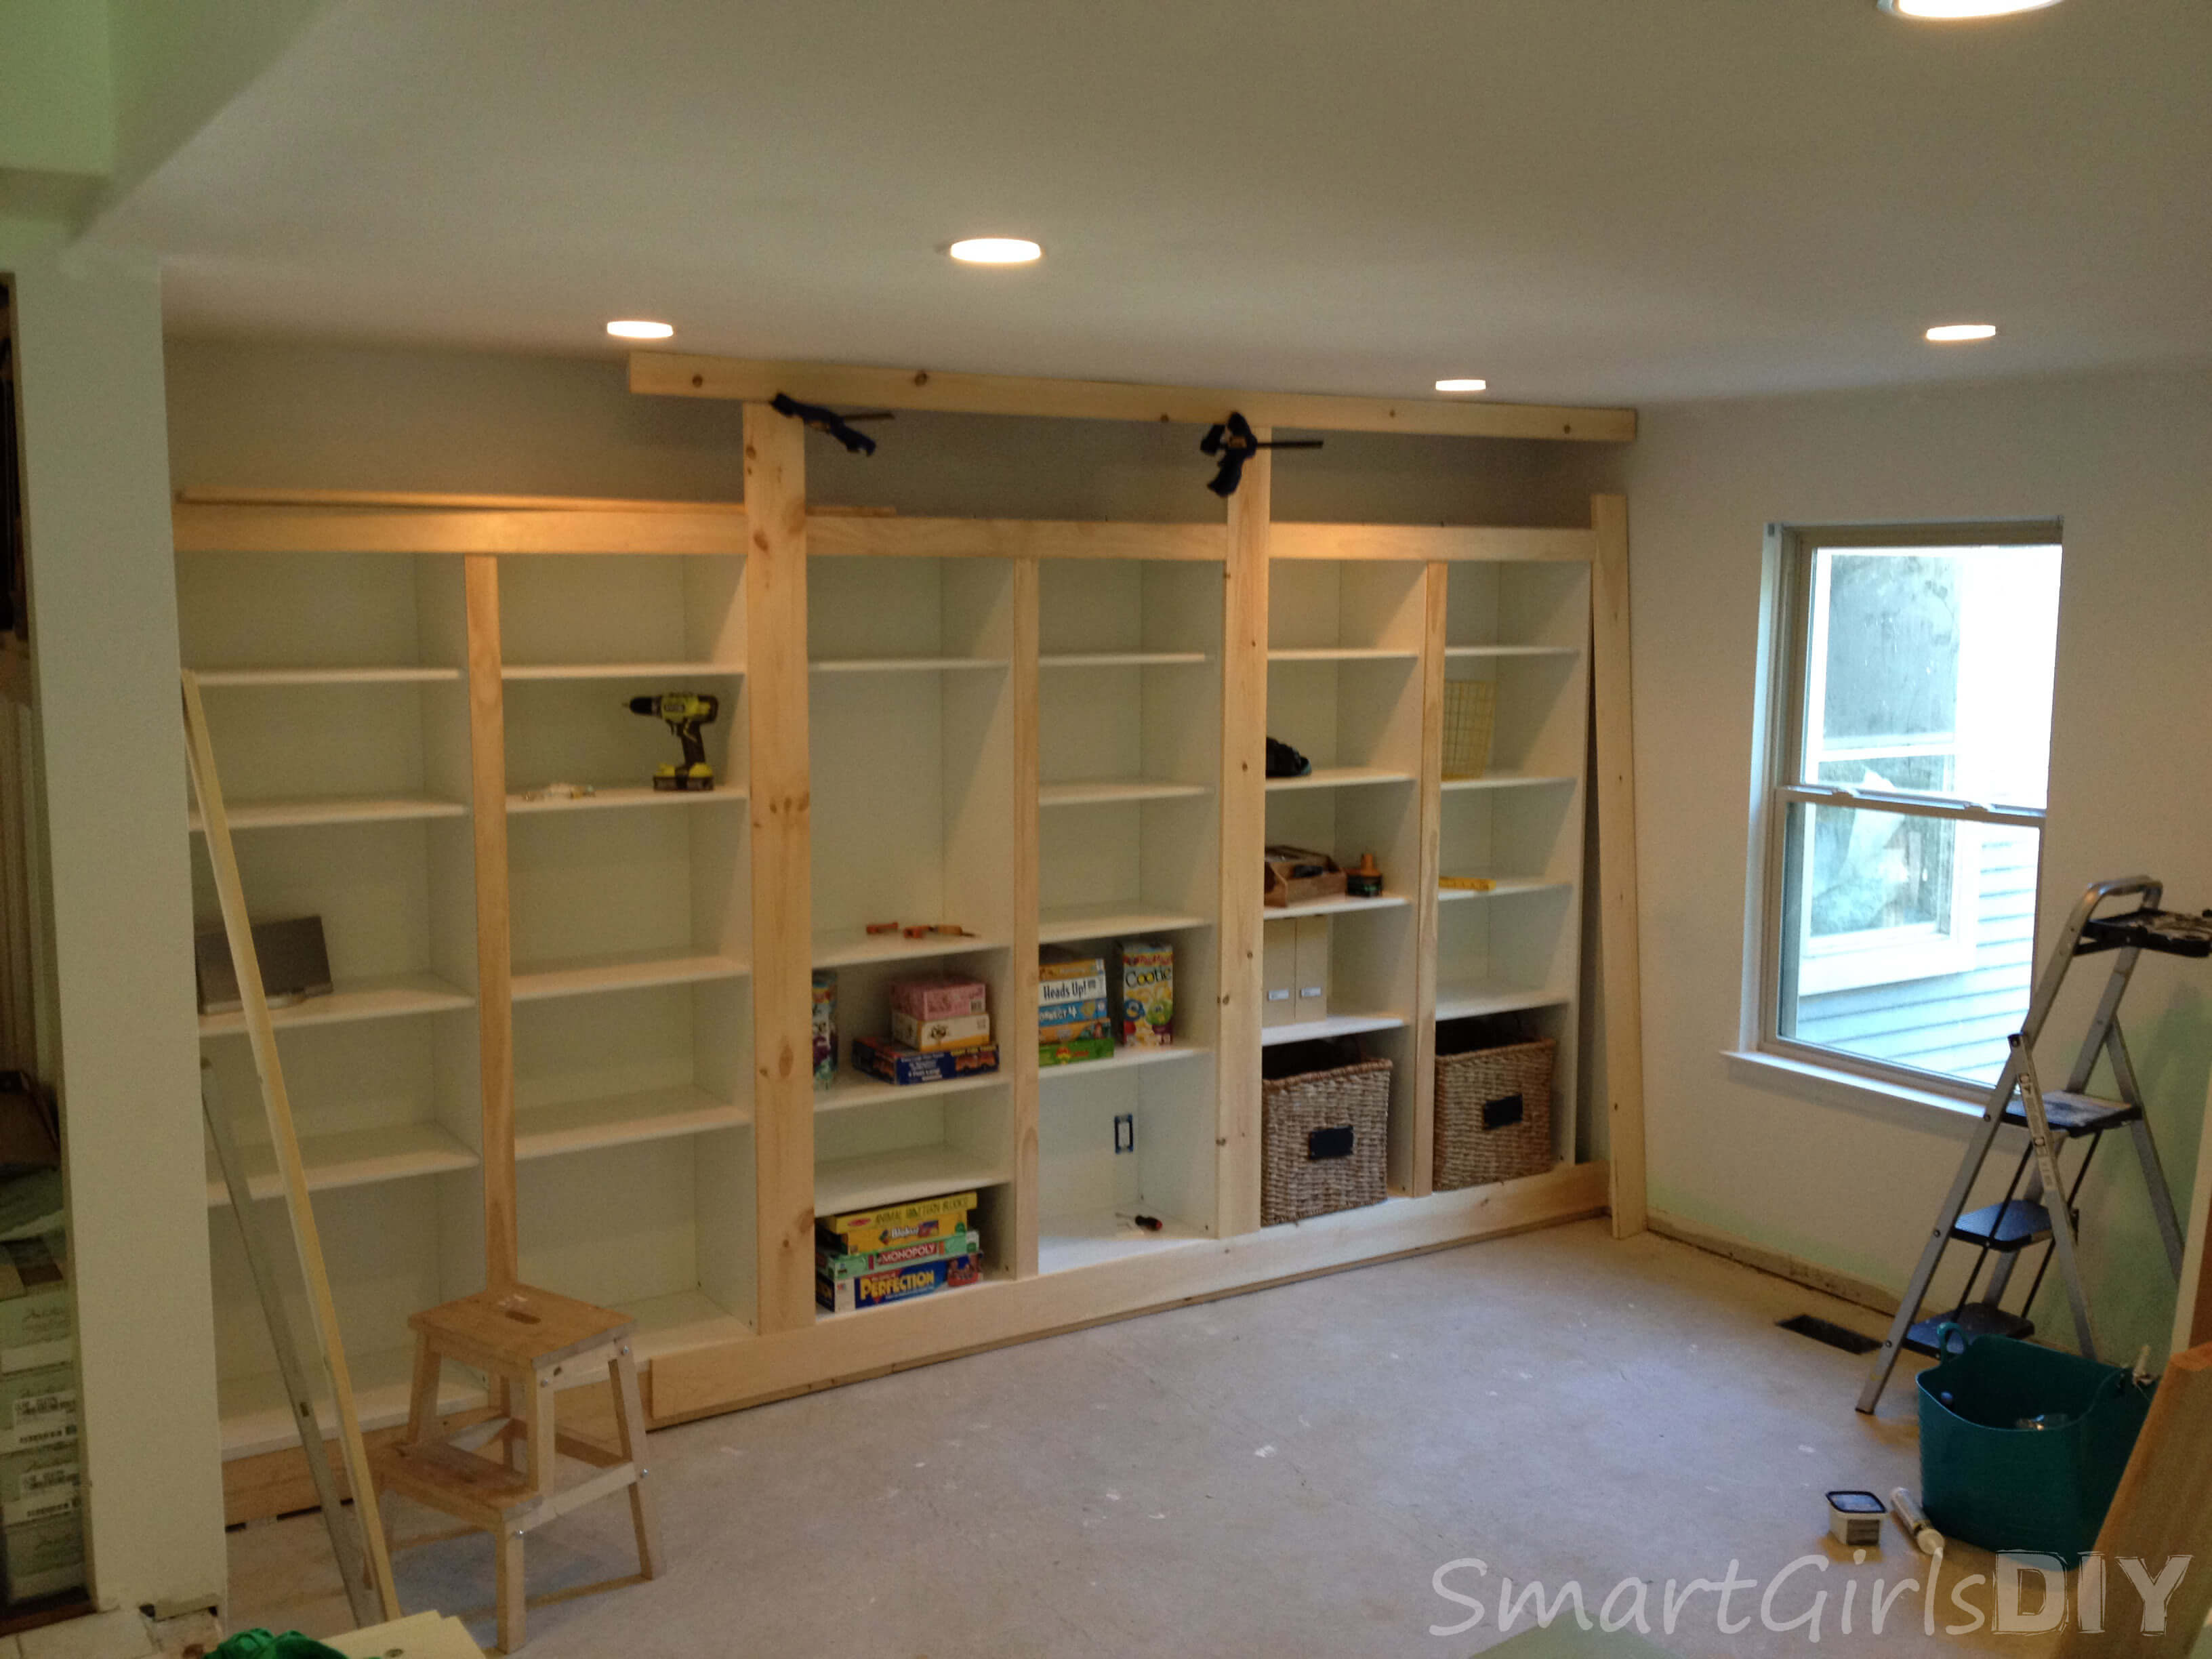 Family room bookshelves - Copy